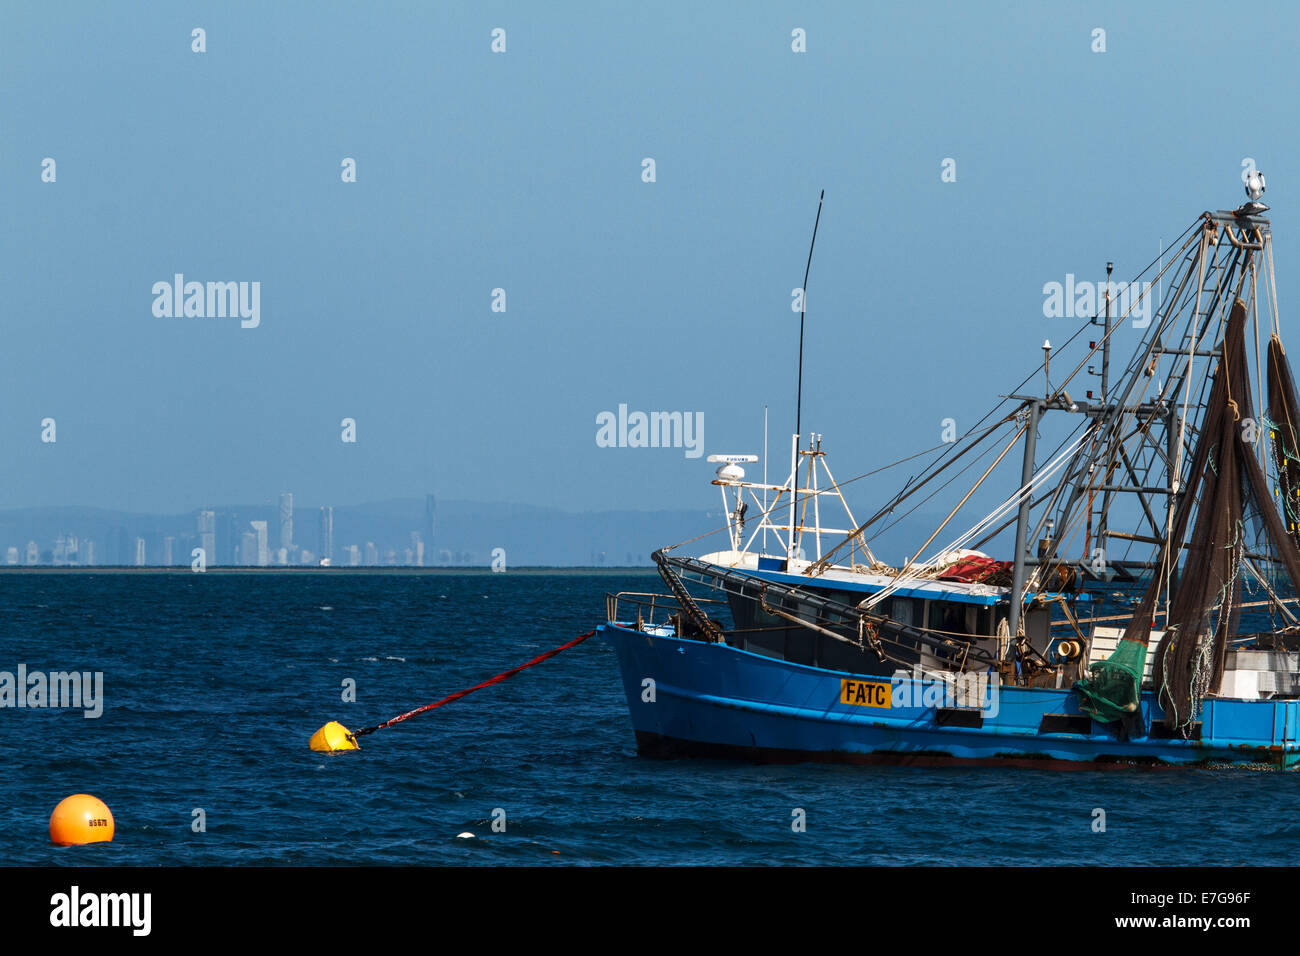 Trawler with Brisbane in the background - Stock Image